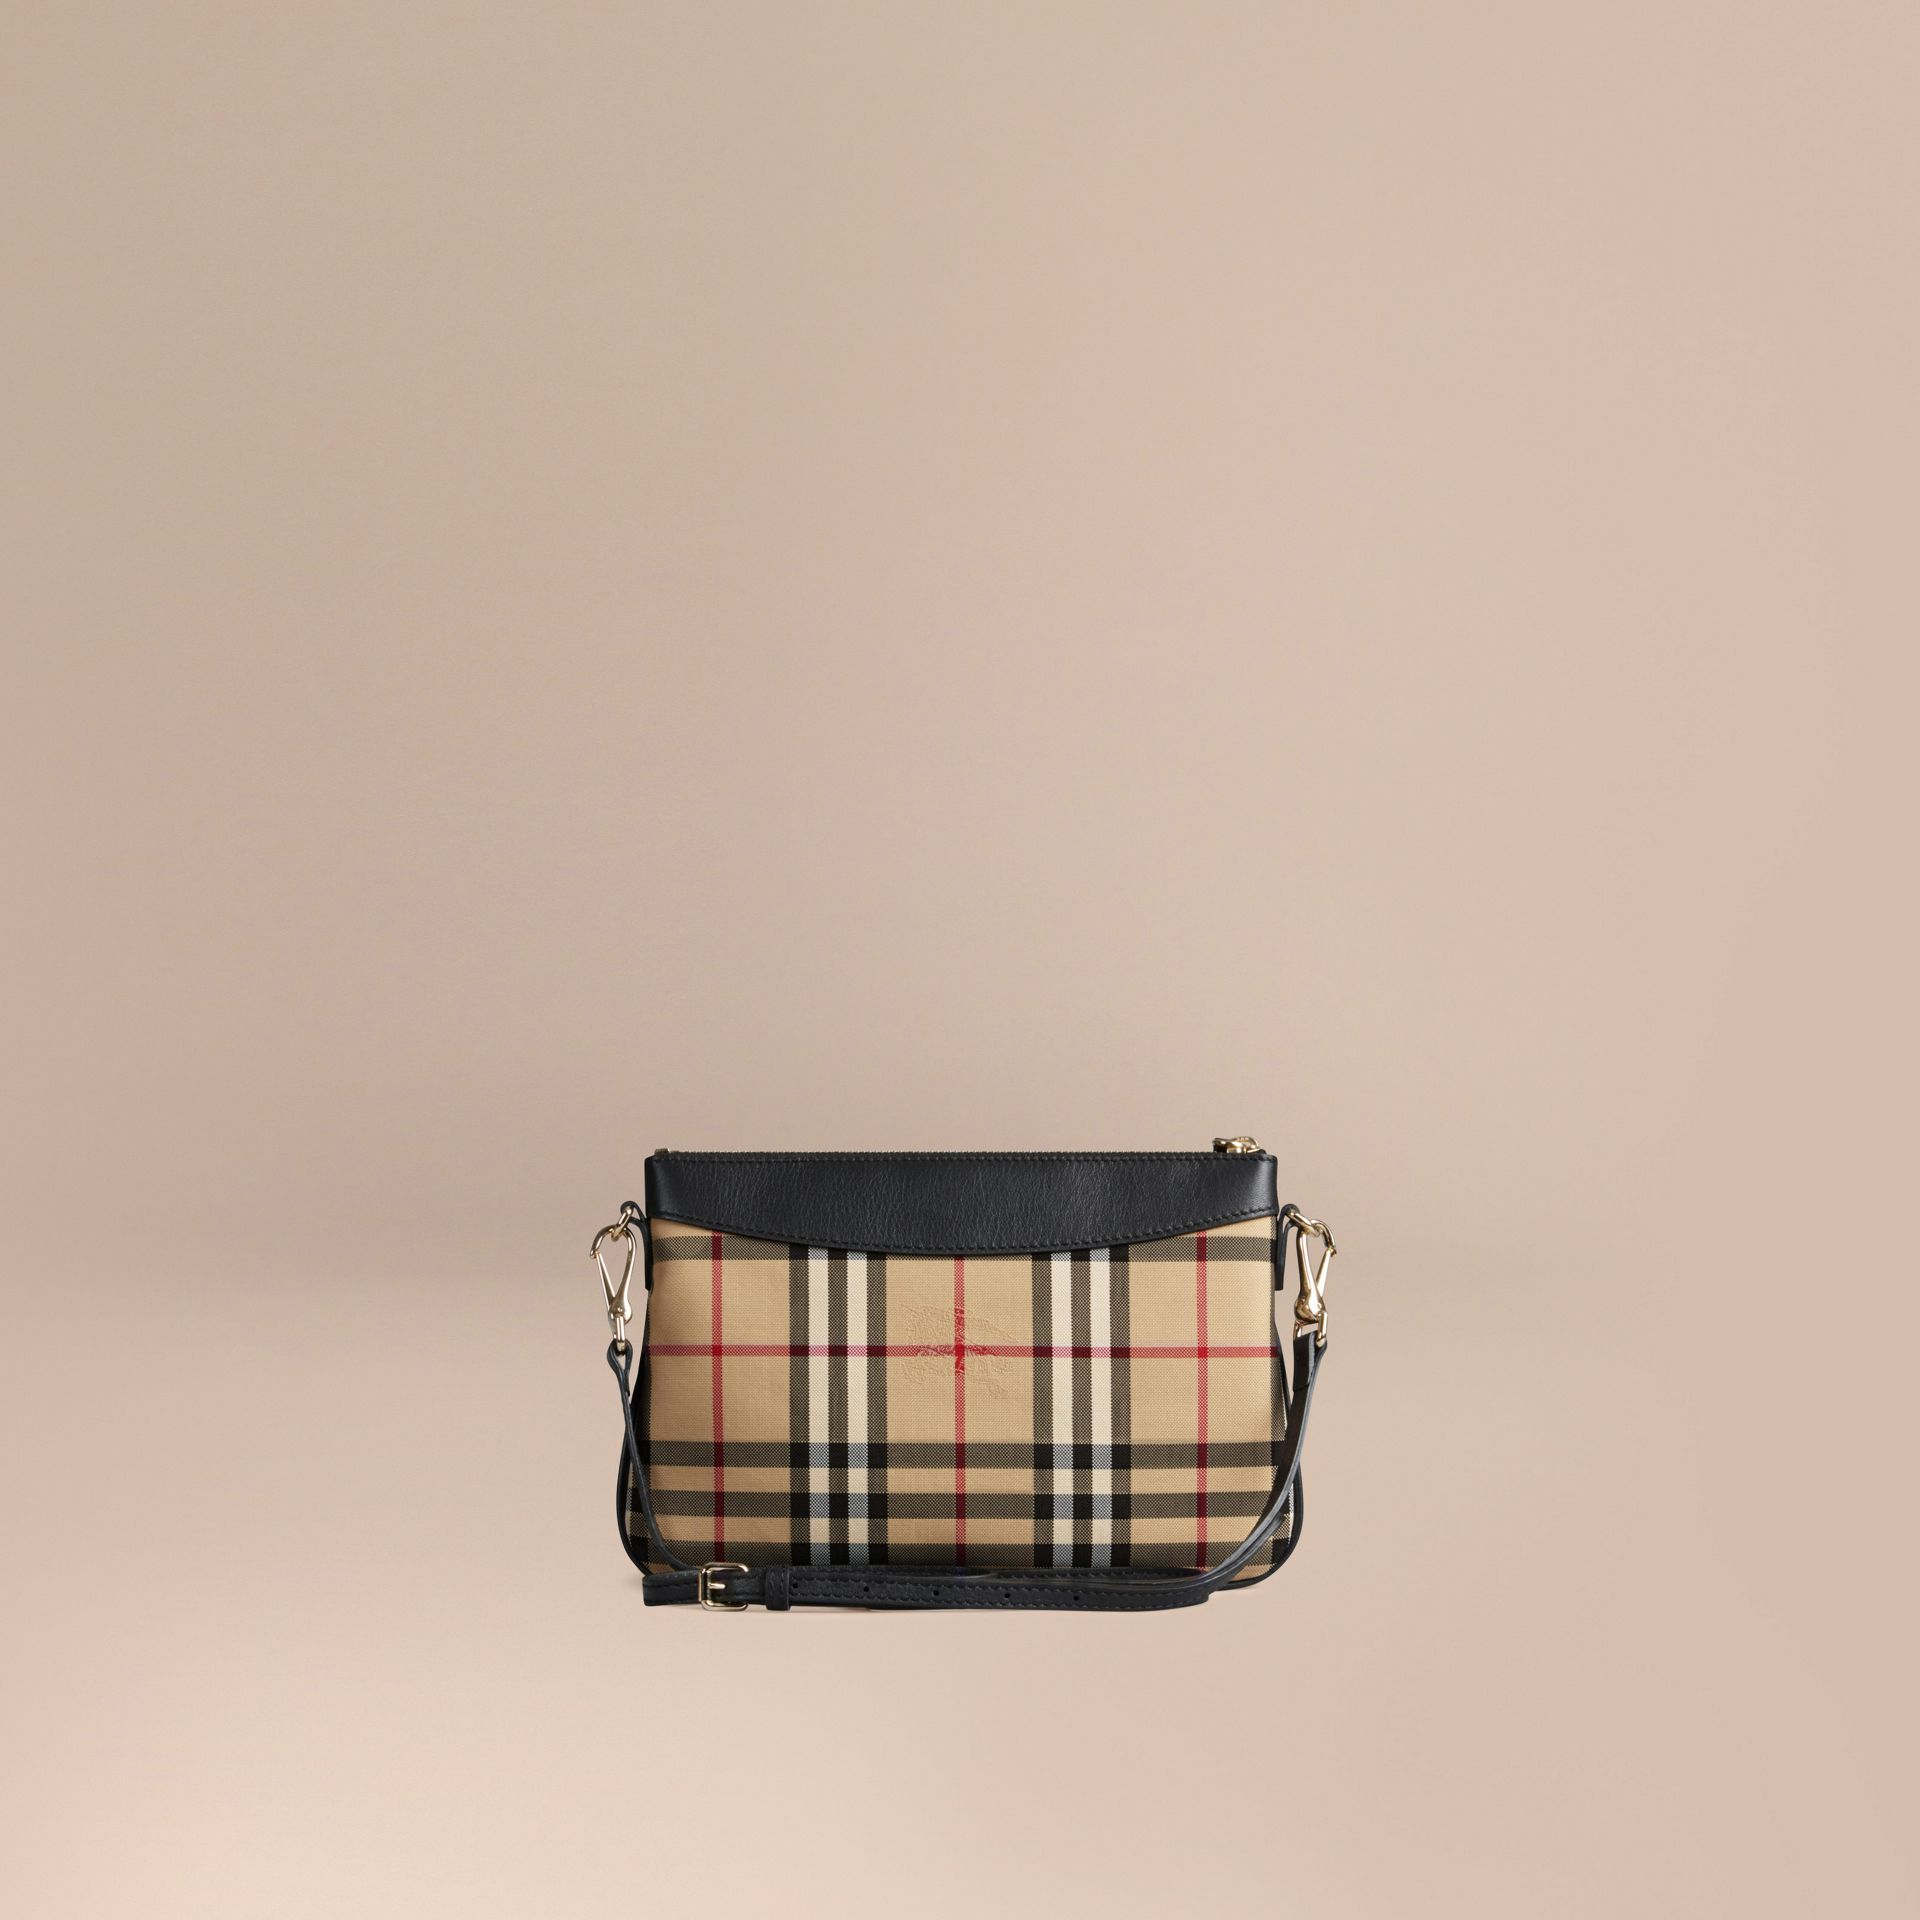 Horseferry Check and Leather Clutch Bag in Black - gallery image 5